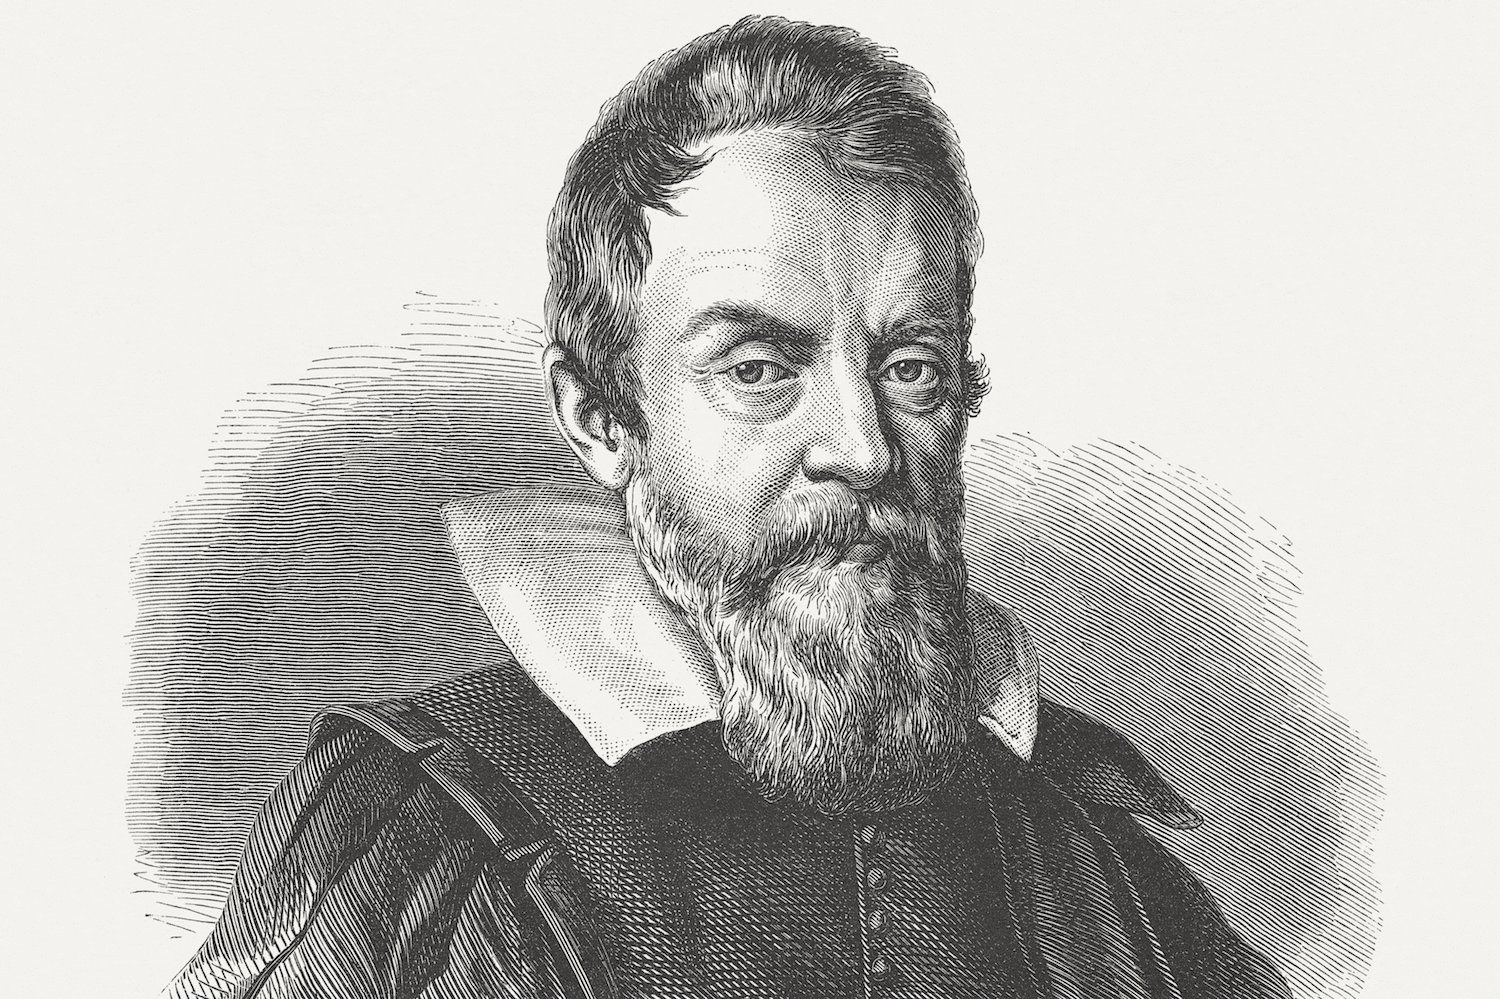 Galileo Galilei (1564-1642), wood engraving, published in 1864